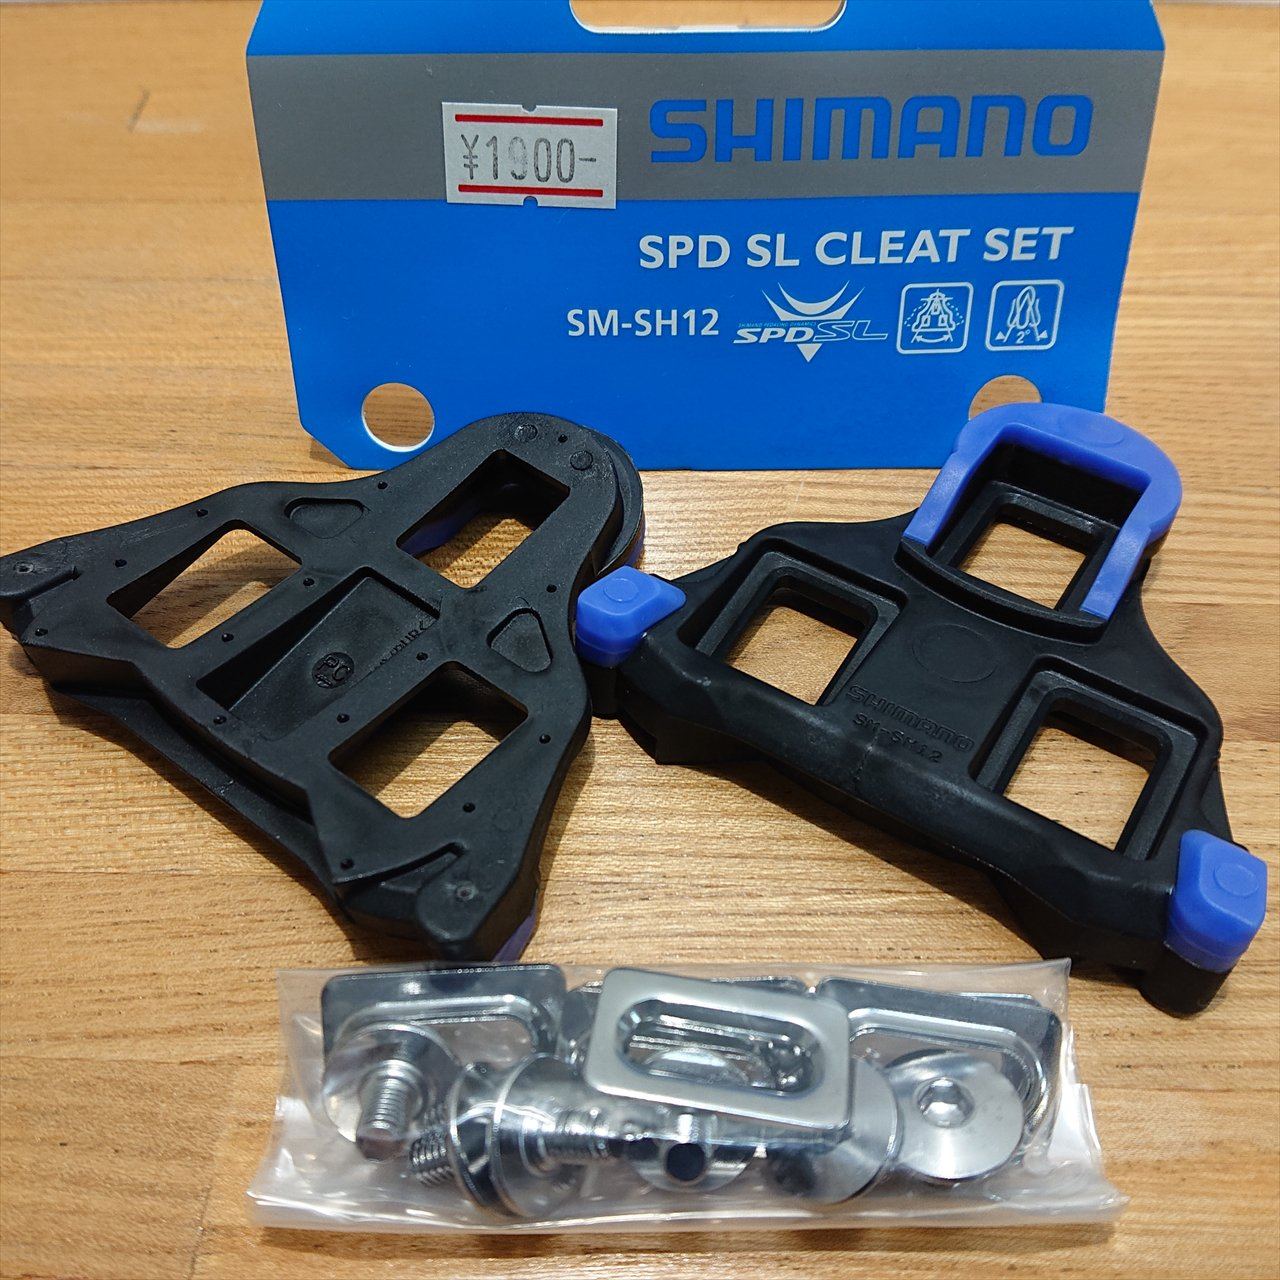 SPD SL CLEAT SET SM-SH12 BLUE 2°